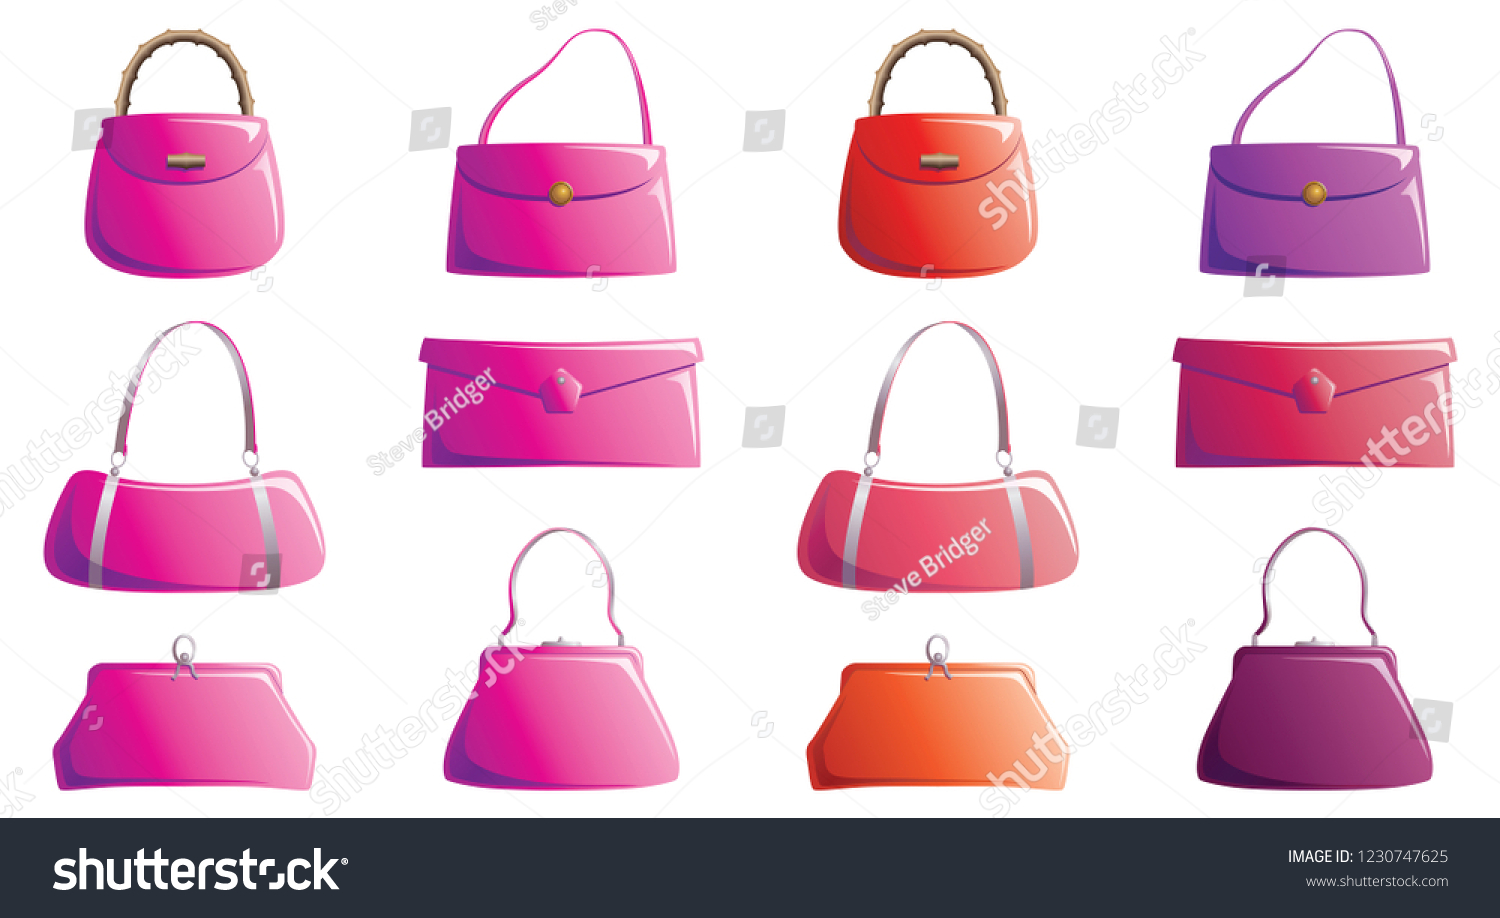 df55f106a4 Vector Illustration Handbags Different Designs Colours Stock Vector ...